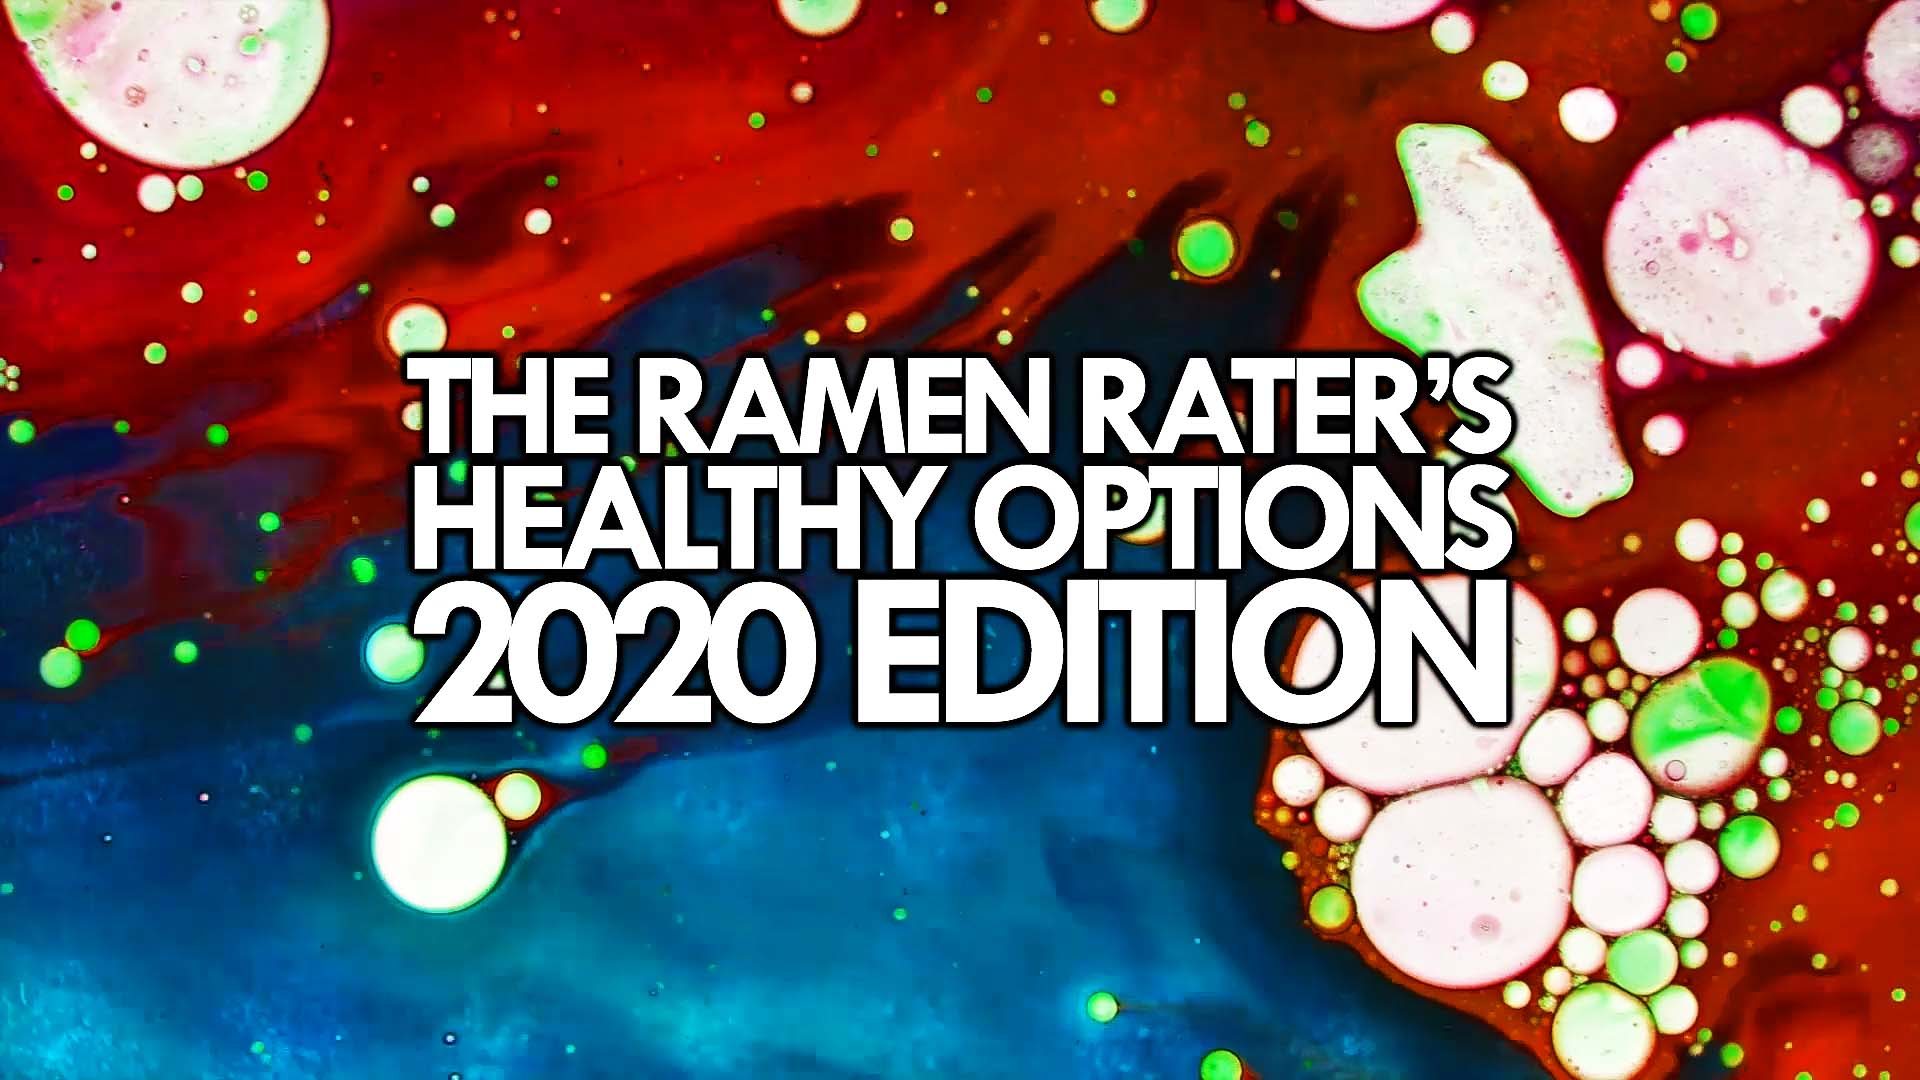 The Ramen Rater's Healthy Options 2020 Edition